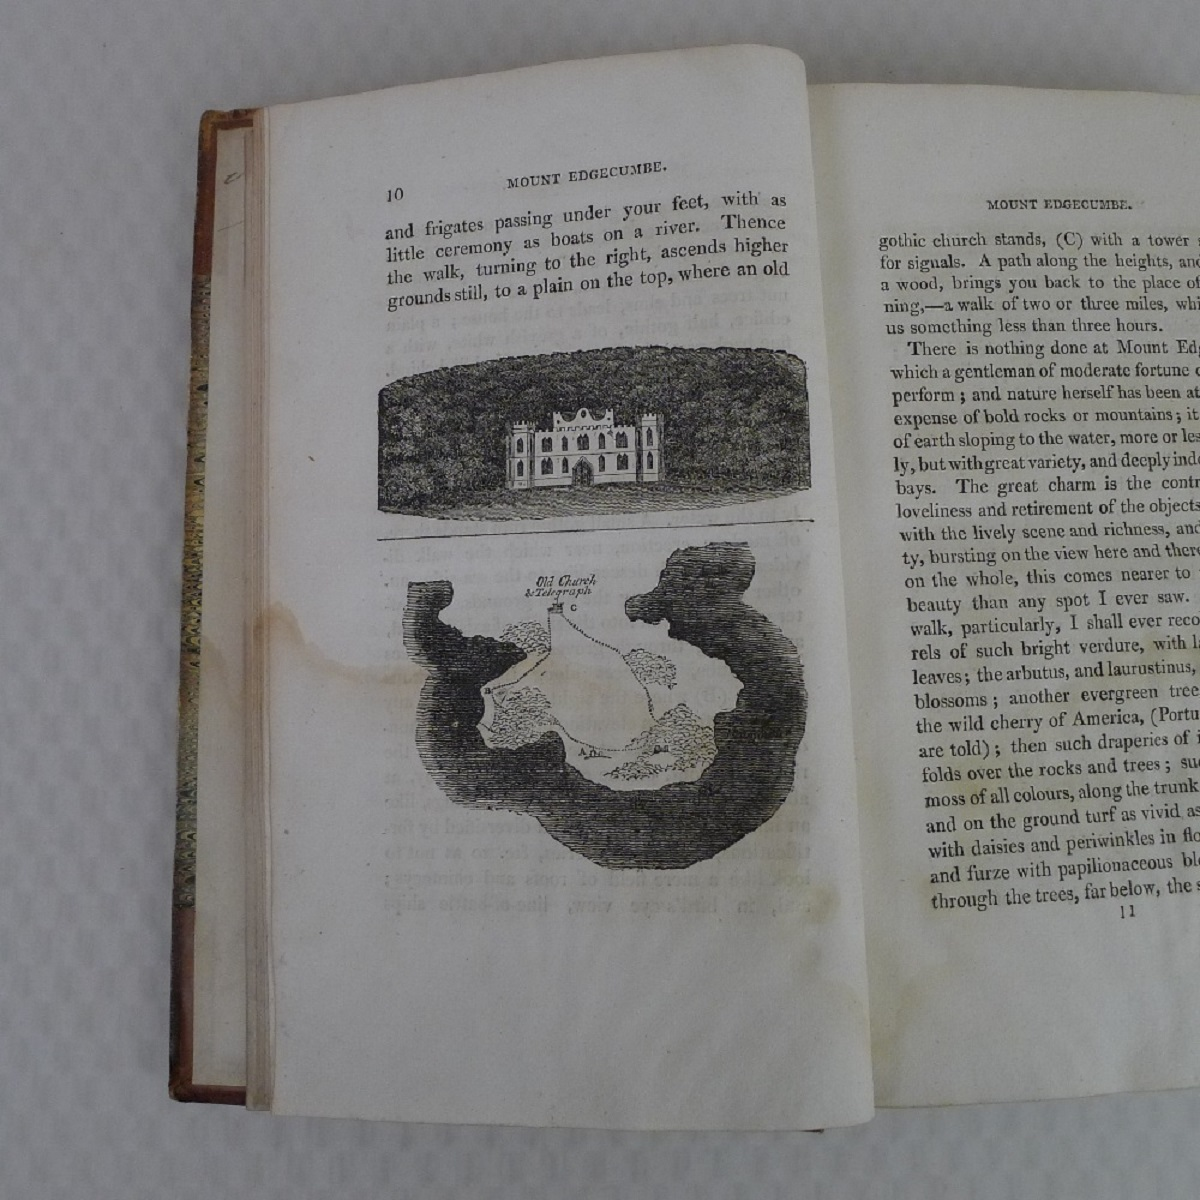 Simond's Travels in Great Britain Volumes I and II, Second Edition published in 1817, being a - Image 6 of 9